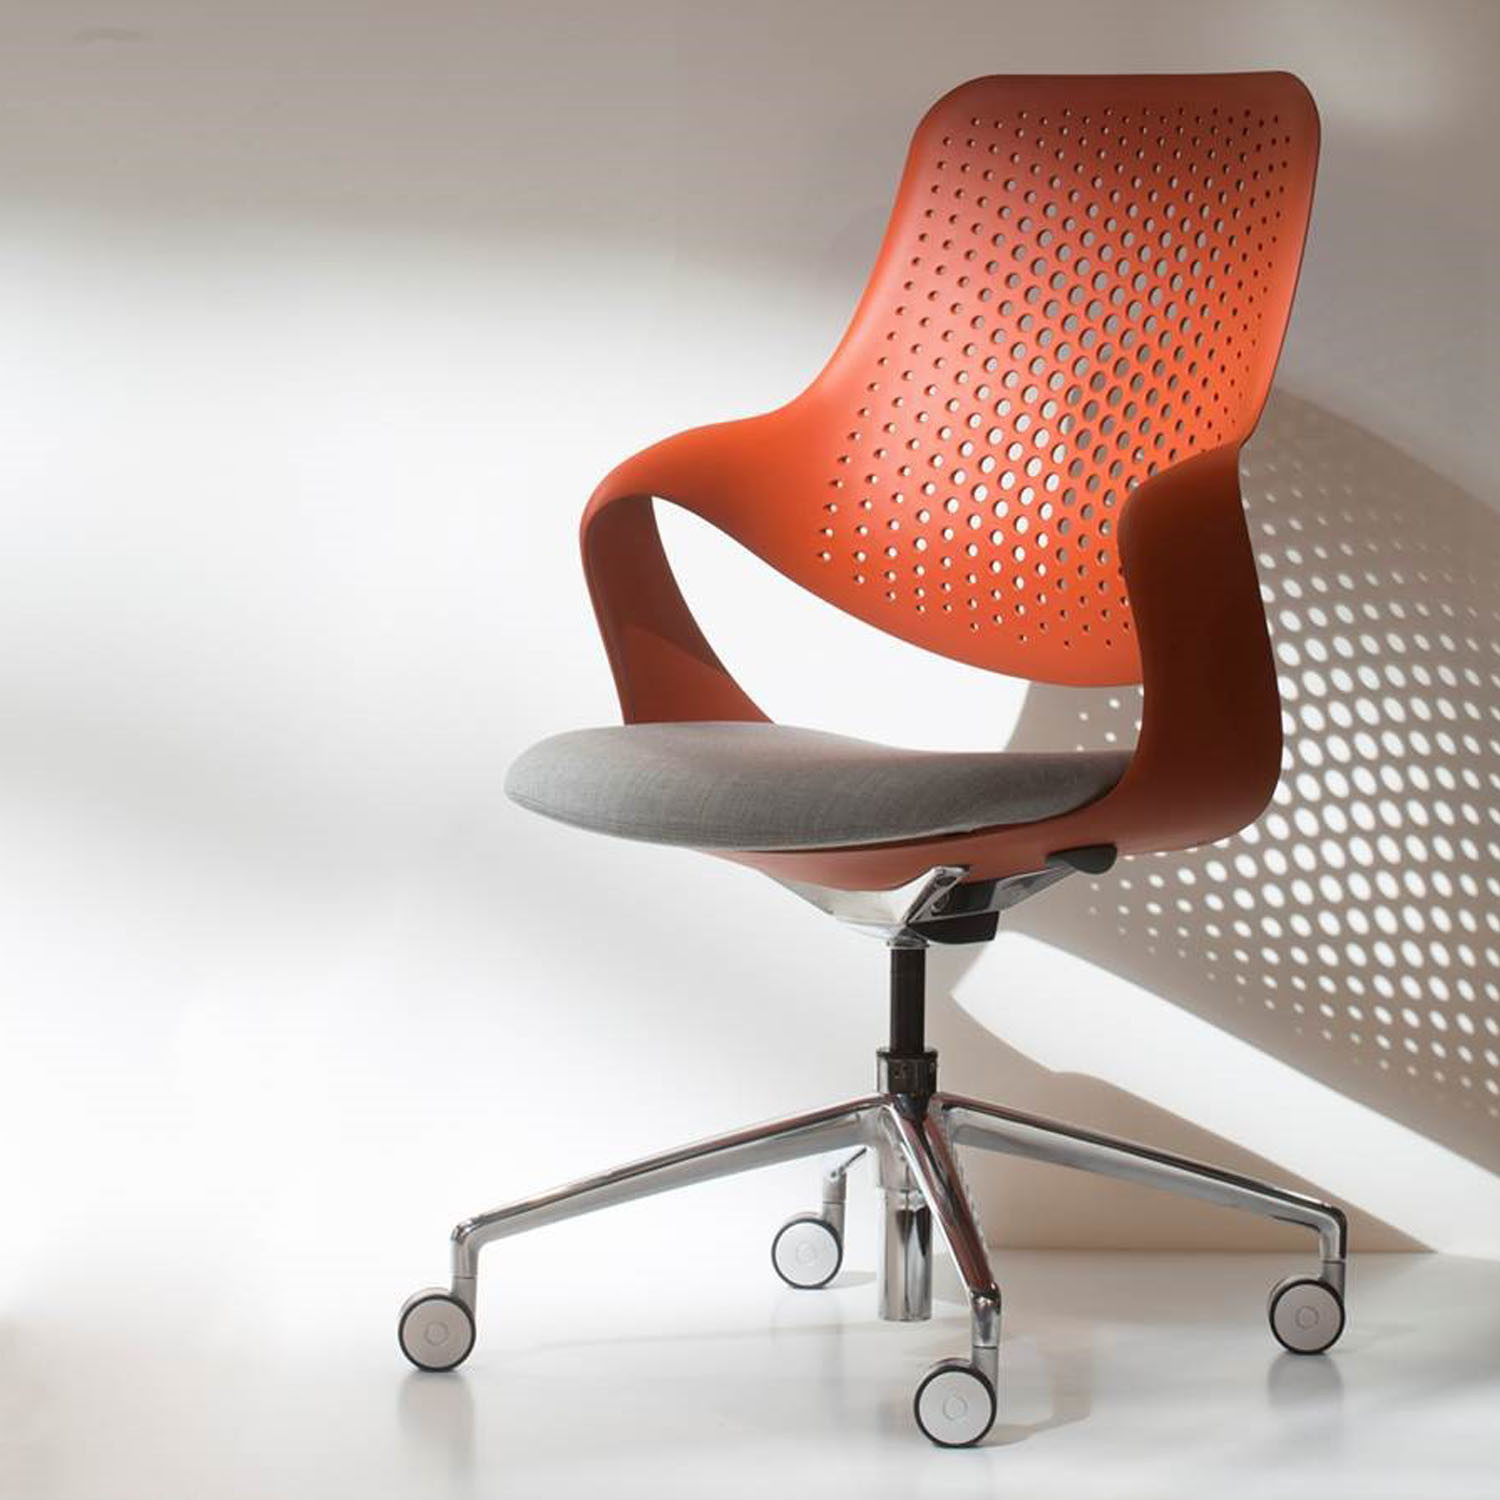 Coza Task Chair from Martin  Ballendat